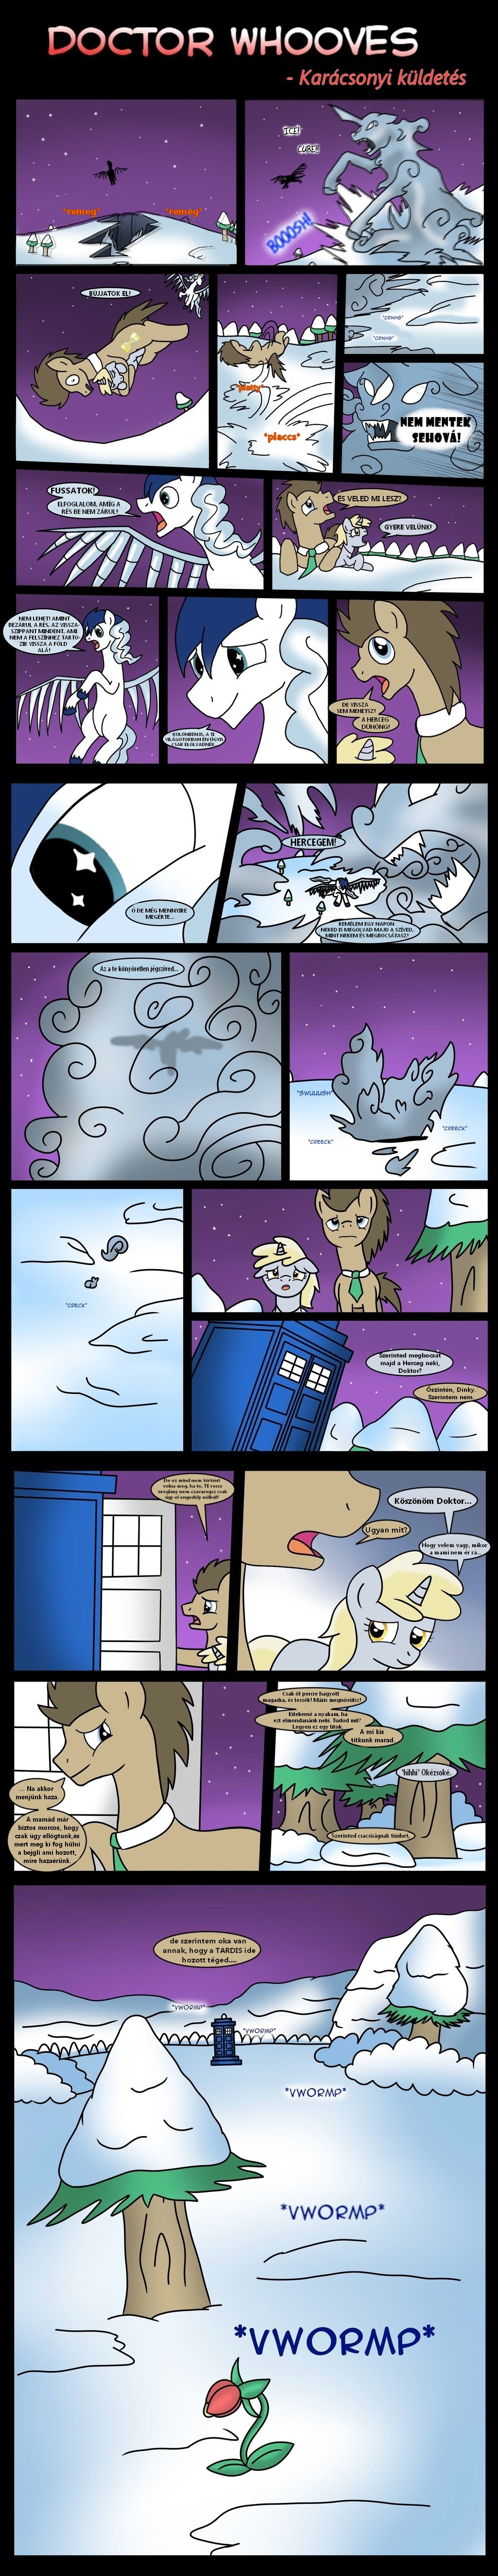 Doctor Whooves christmas special pt 8